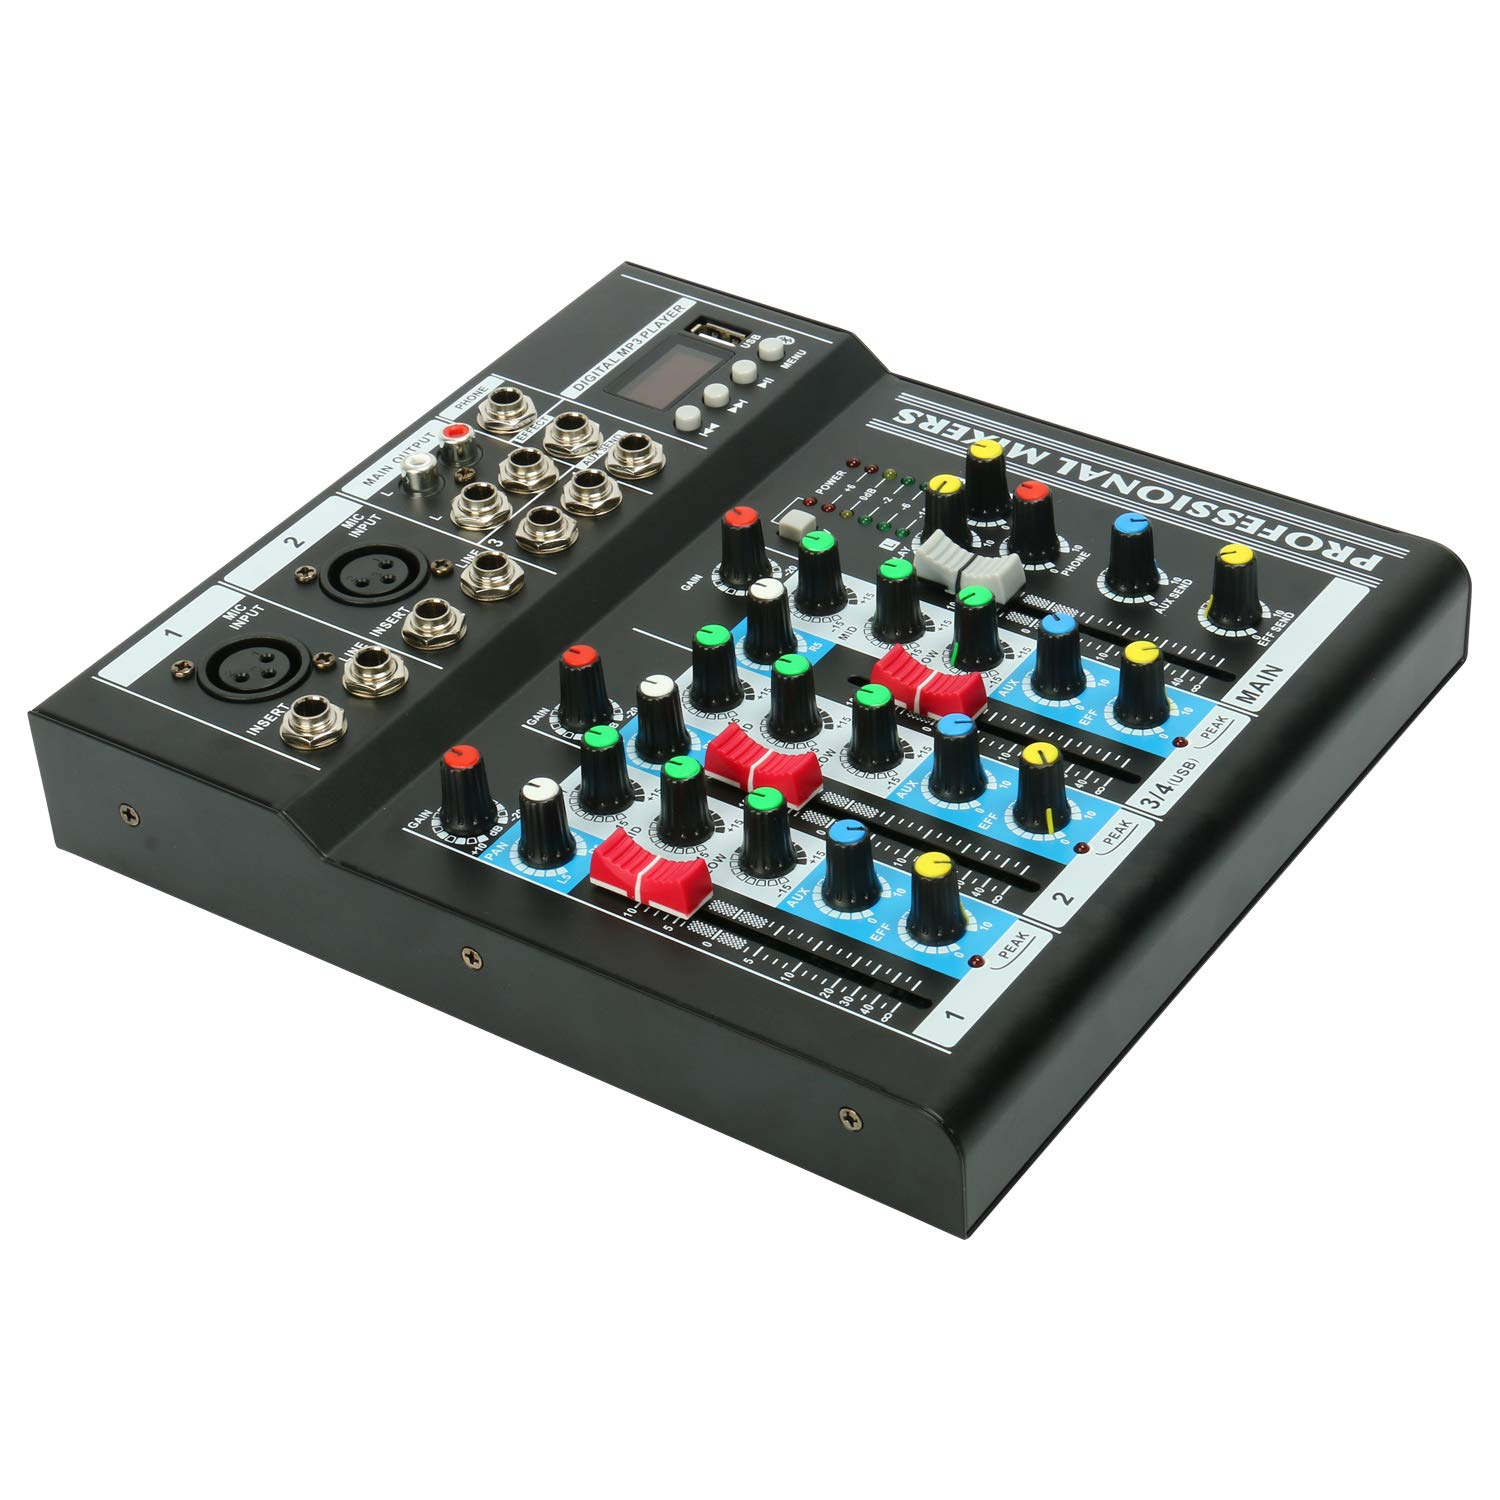 4 Channel Mixing Console Digital Audio Mixer with USB Audio Interface /& LCD display for Home Studio Recording DJ Network Live Broadcast Karaoke